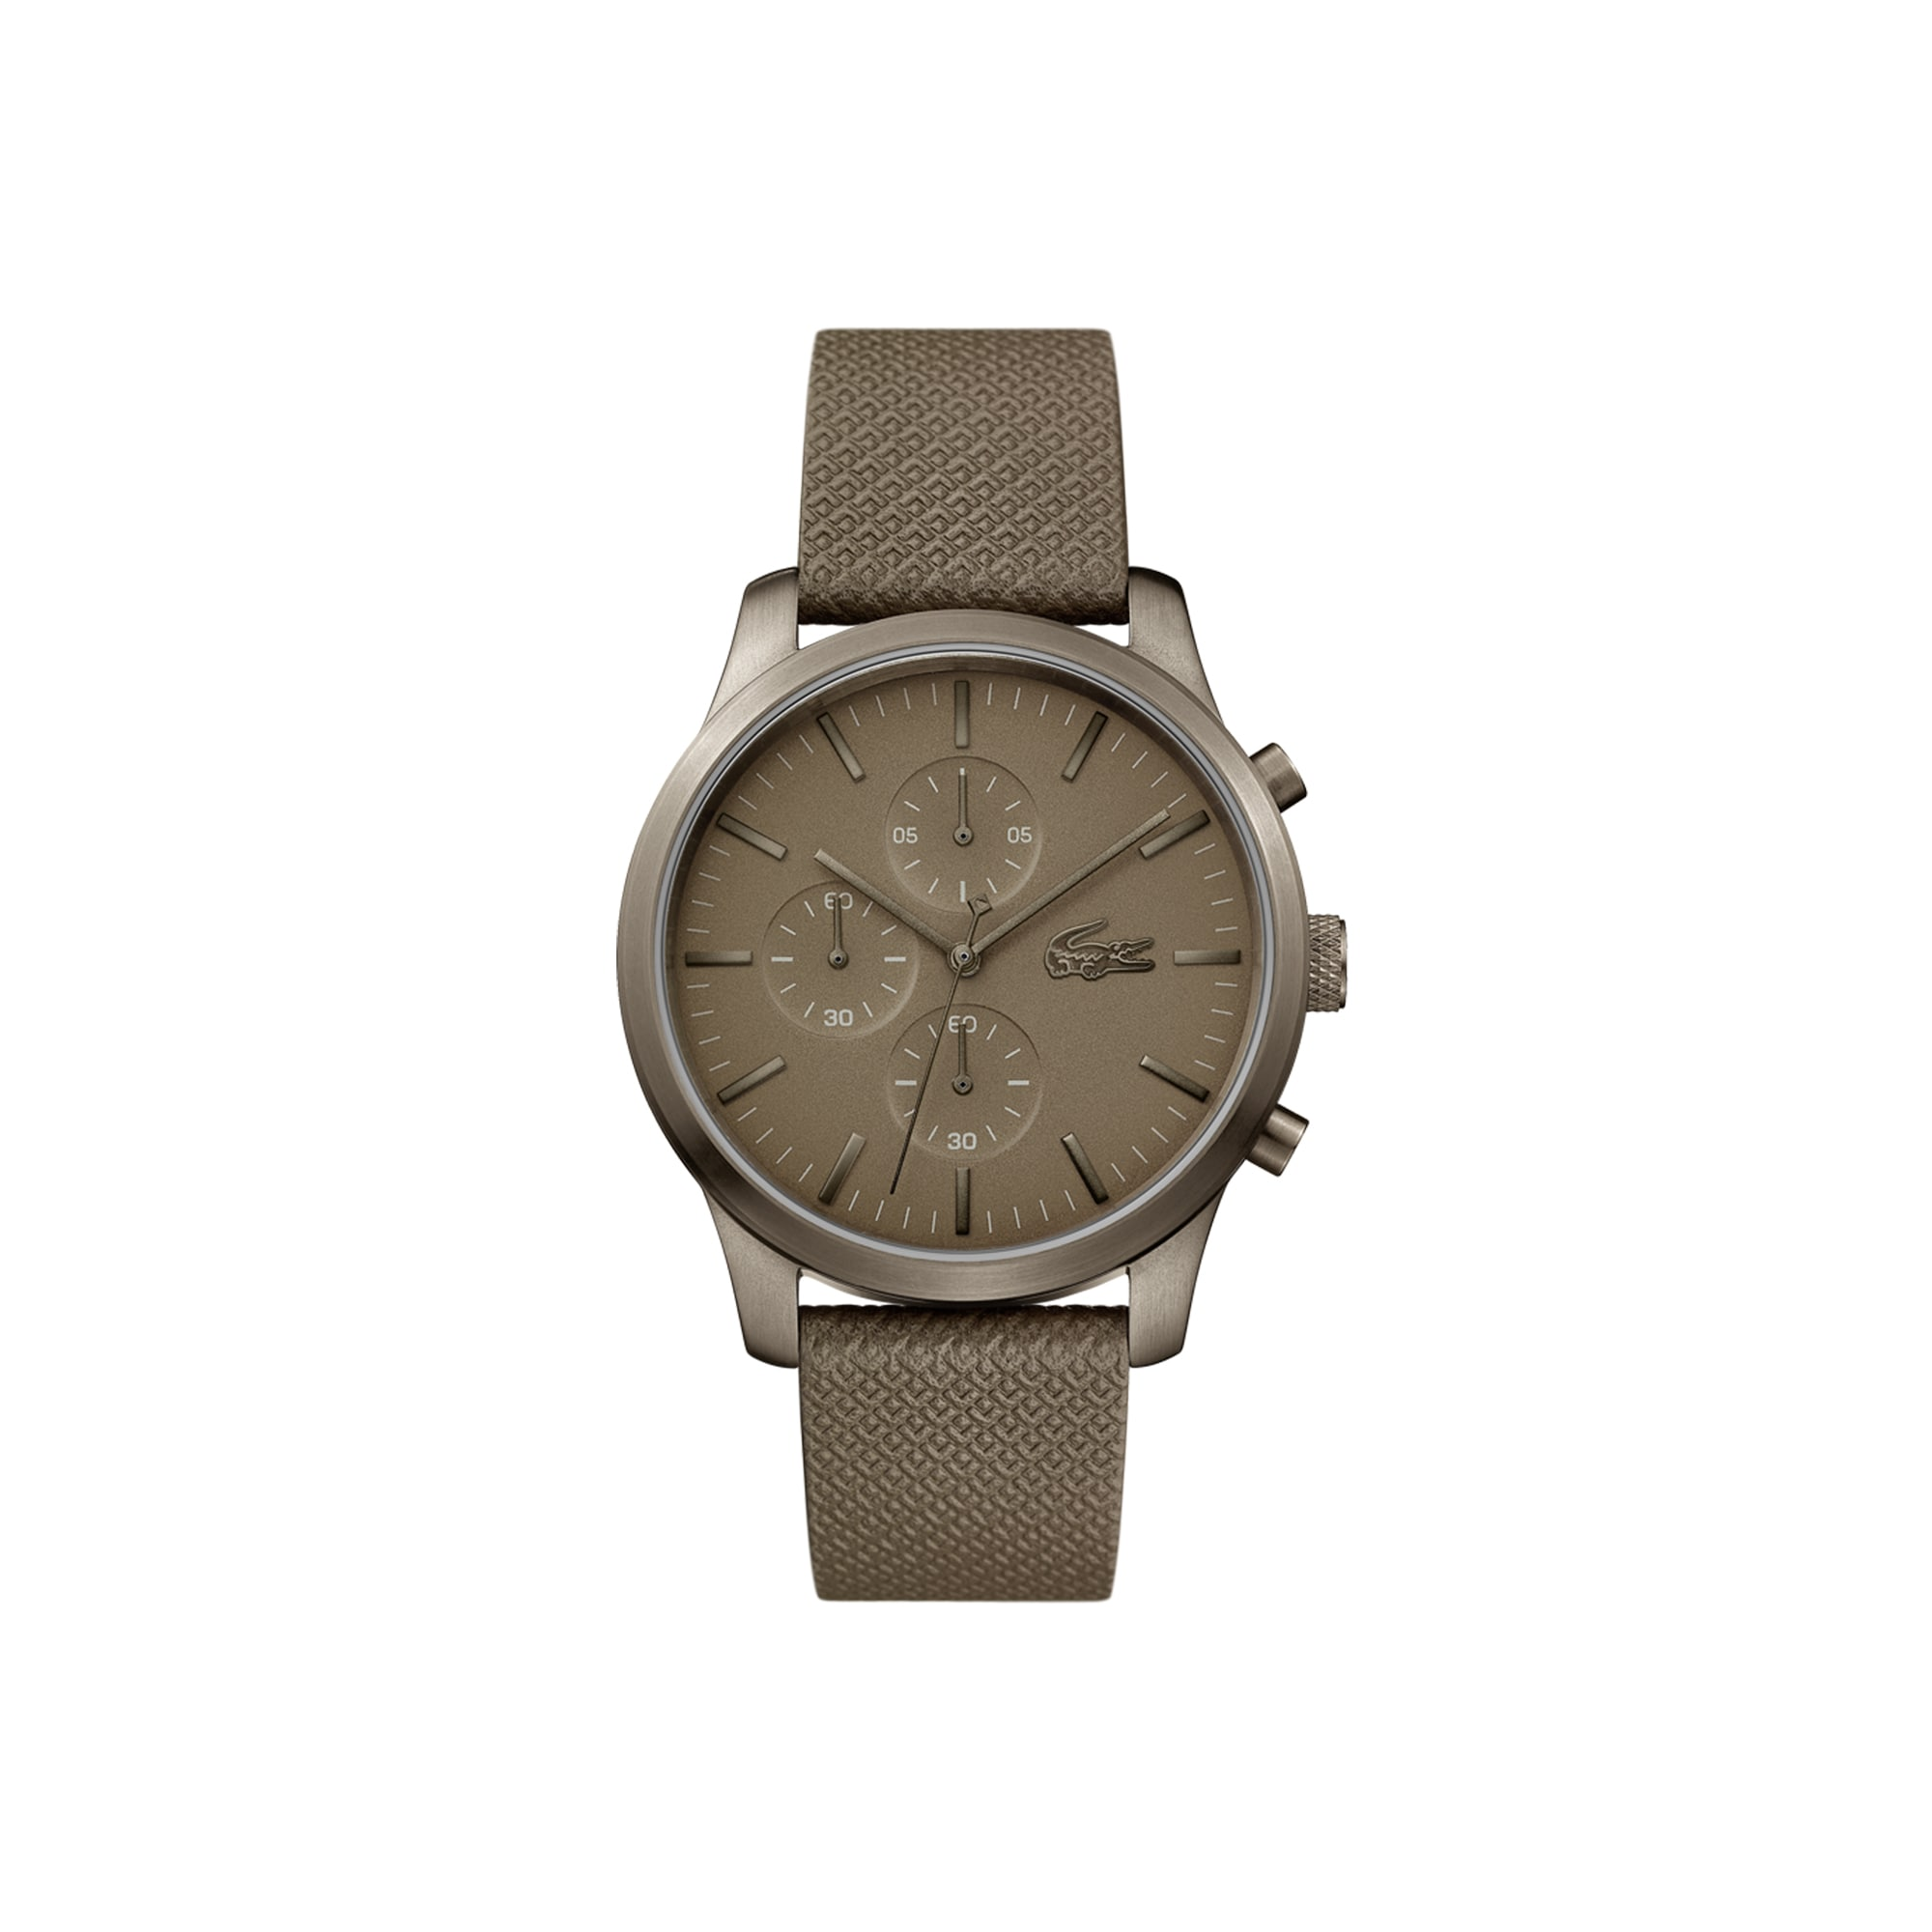 Men's Lacoste 12.12 Chronograph Watch 85th Anniversary with Khaki Embossed Leather Strap